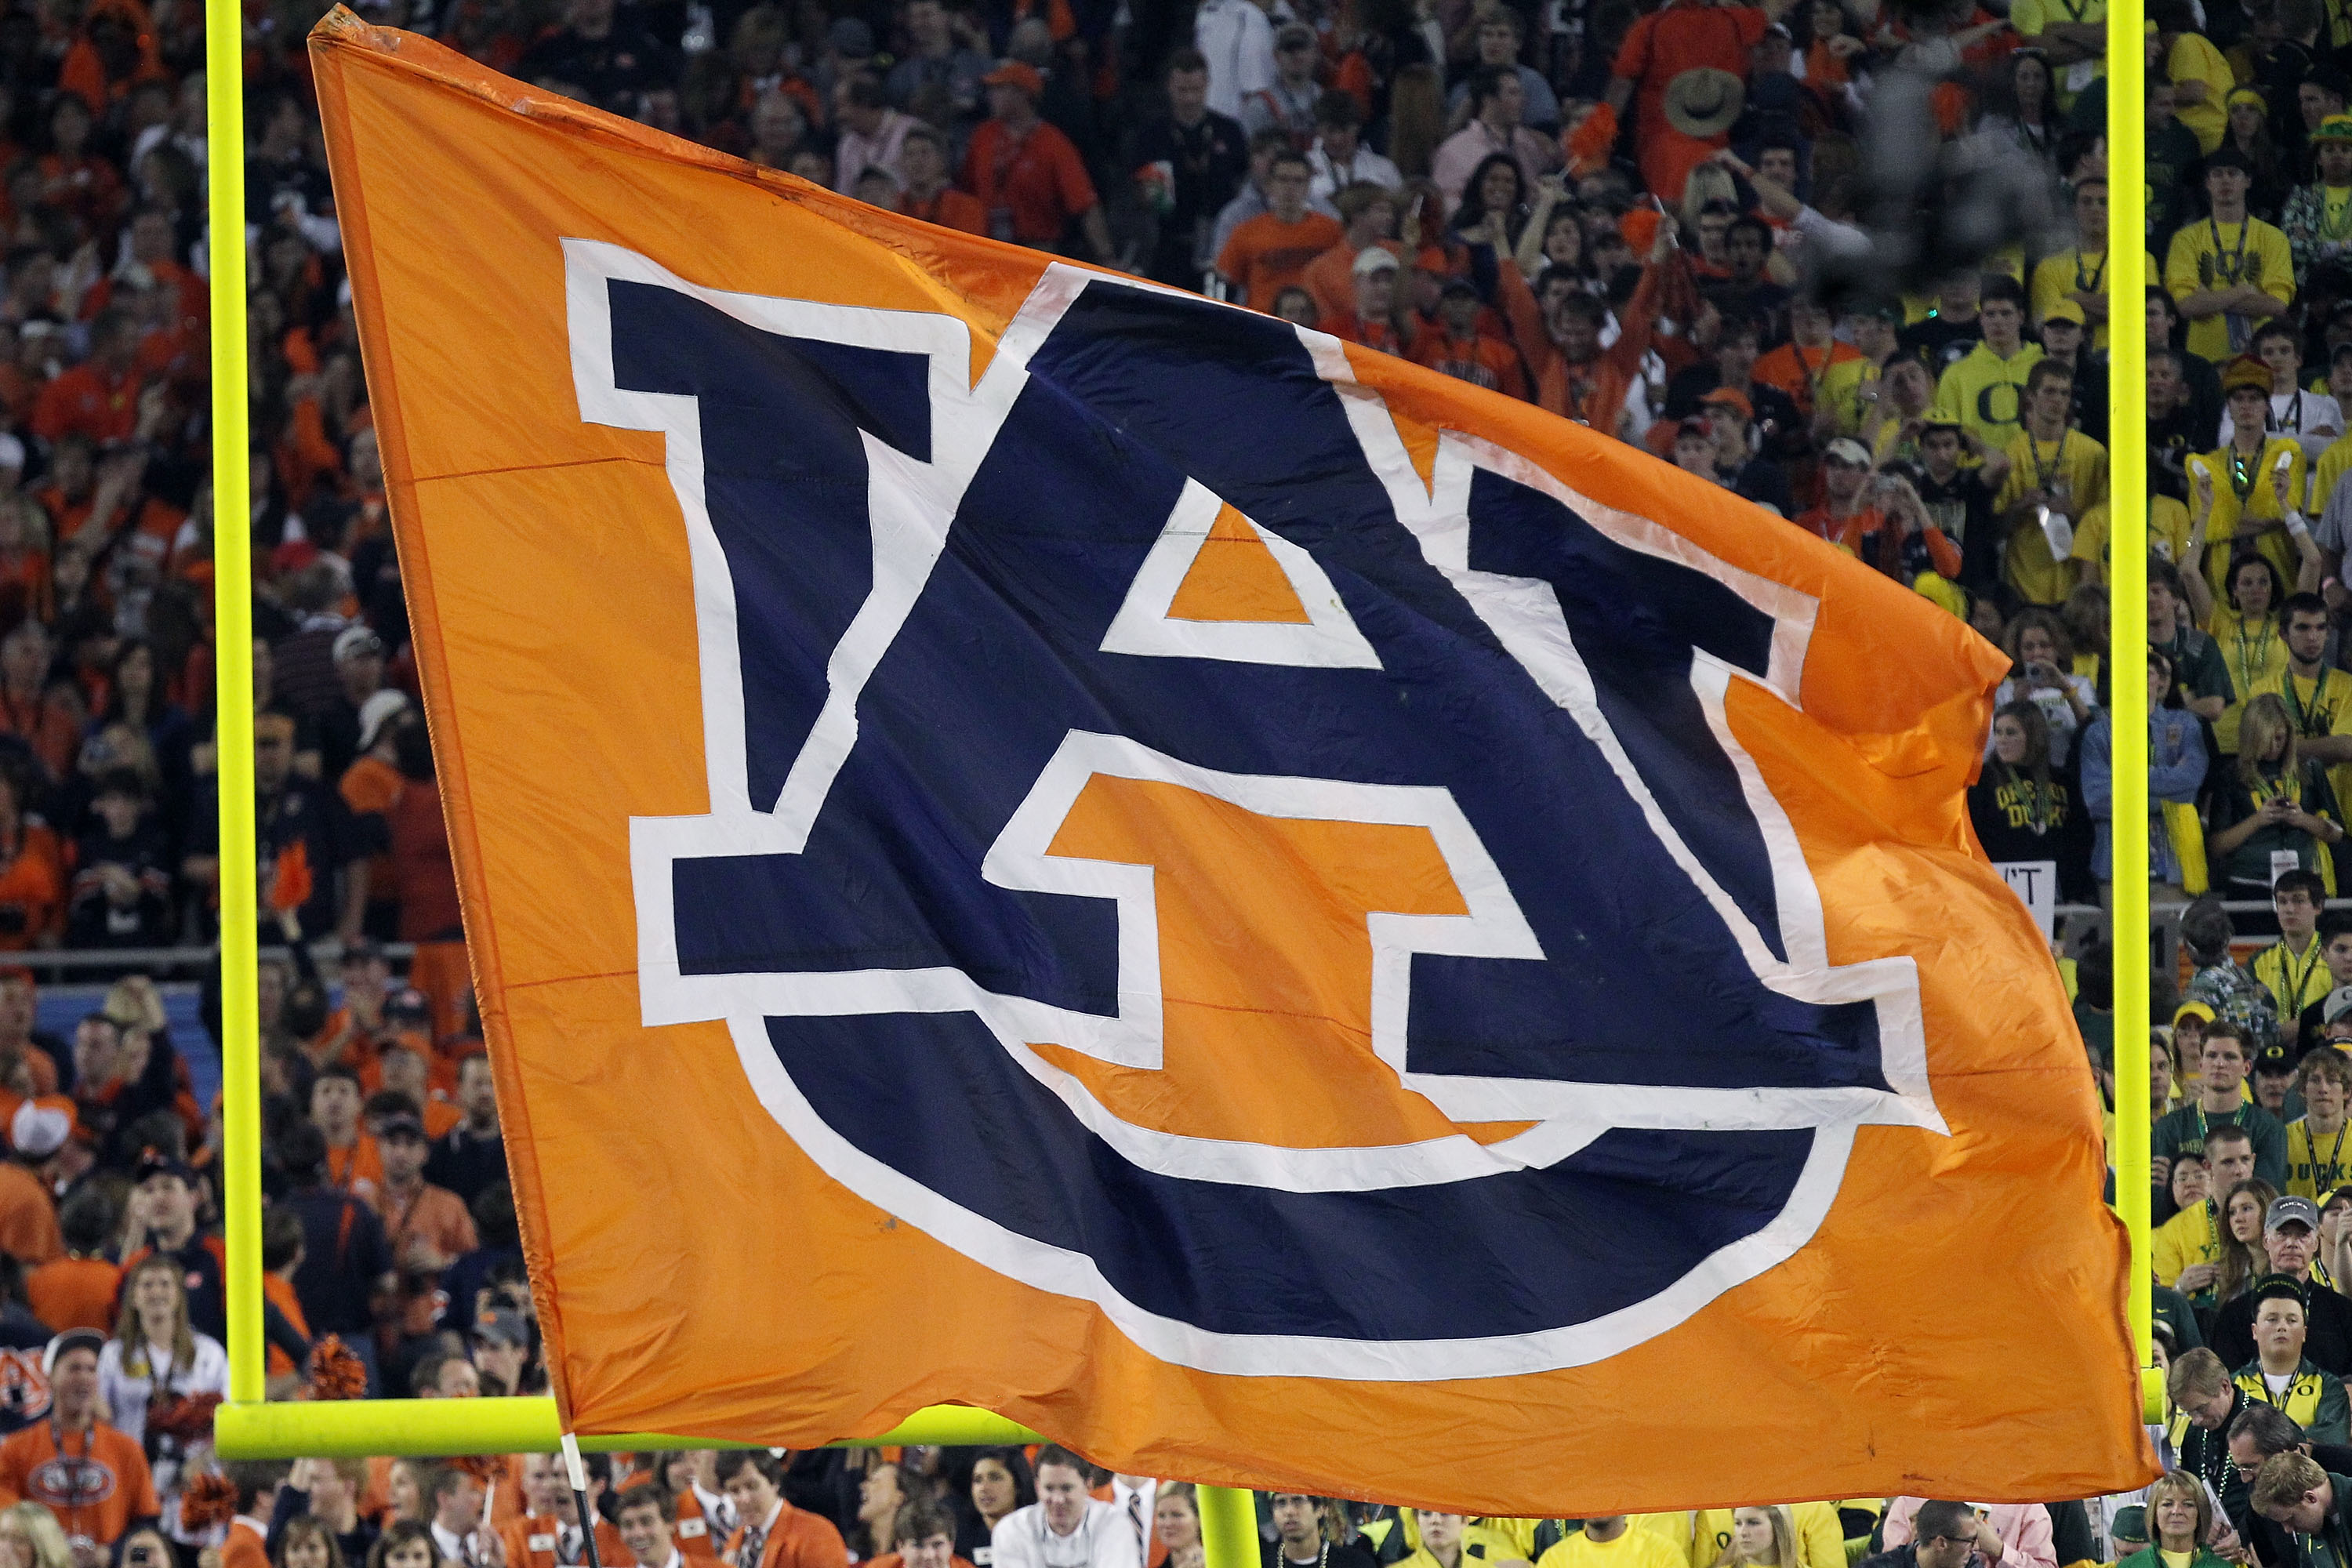 The quarterback job is up in the air for the Auburn Tigers heading into 2011.